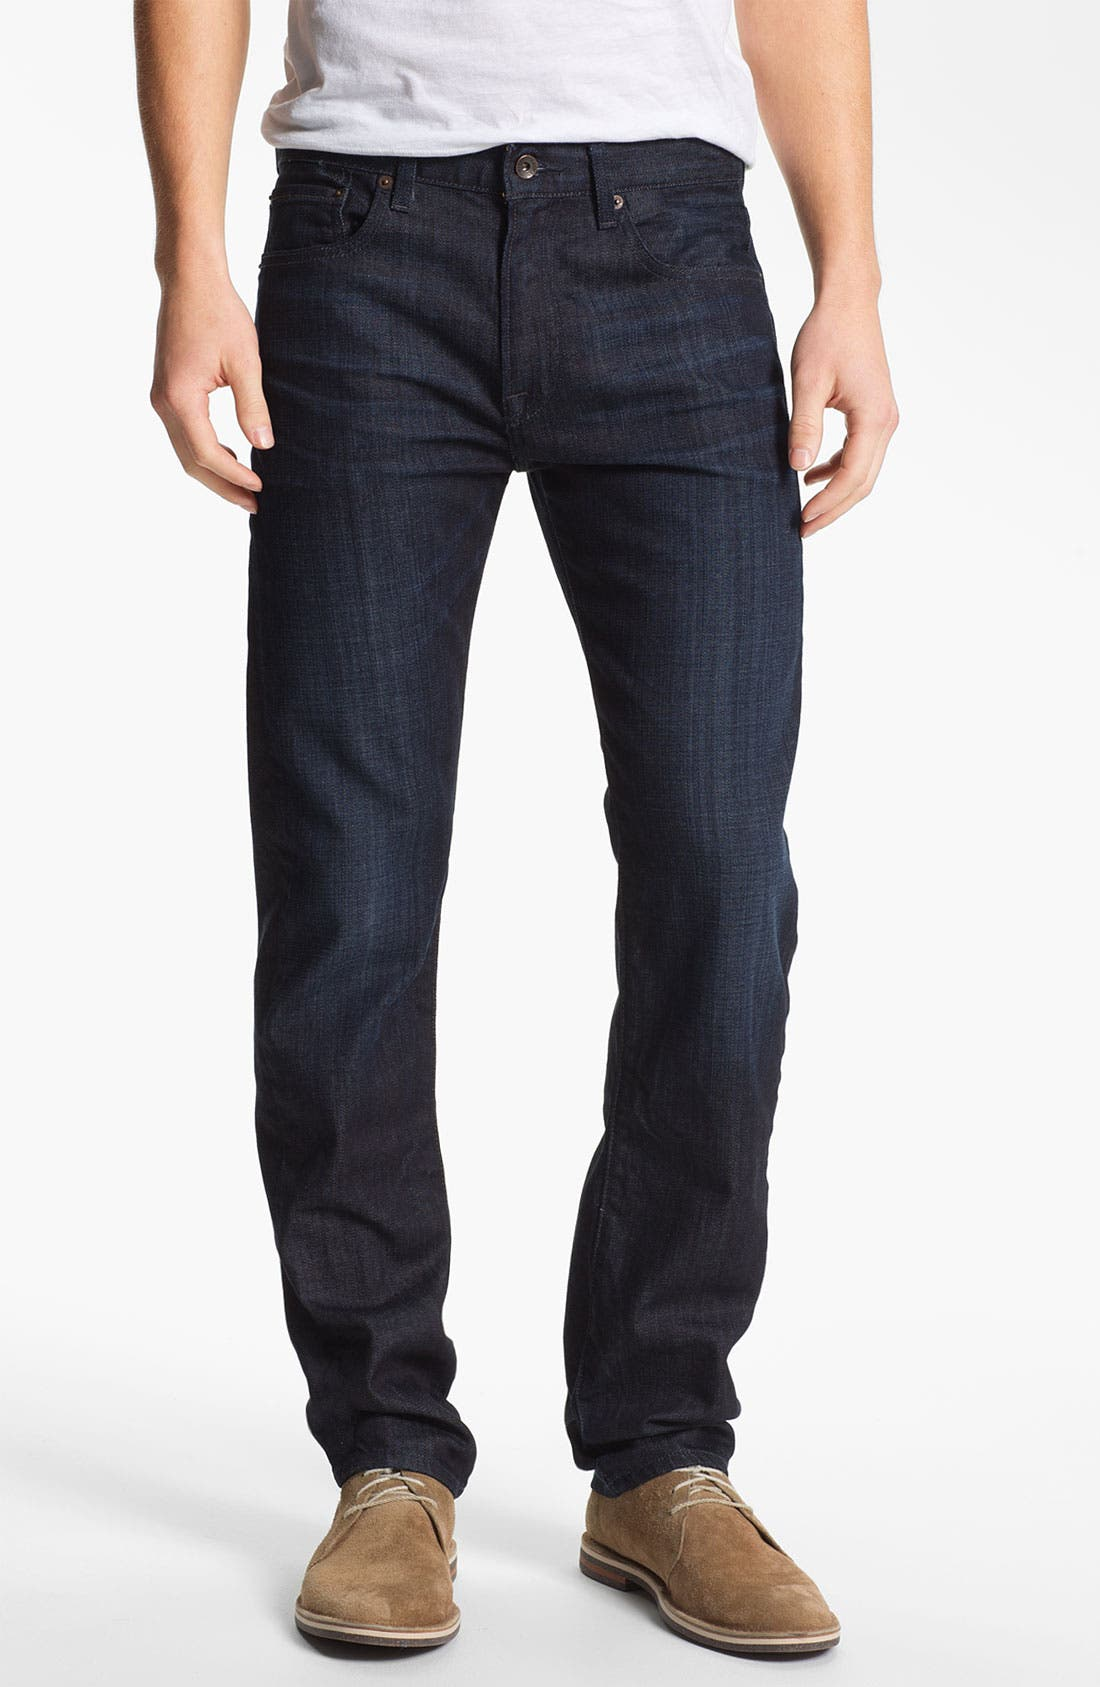 Main Image - Lucky Brand 'Dean' Straight Leg Jeans (Dark Kingston) (Online Only)